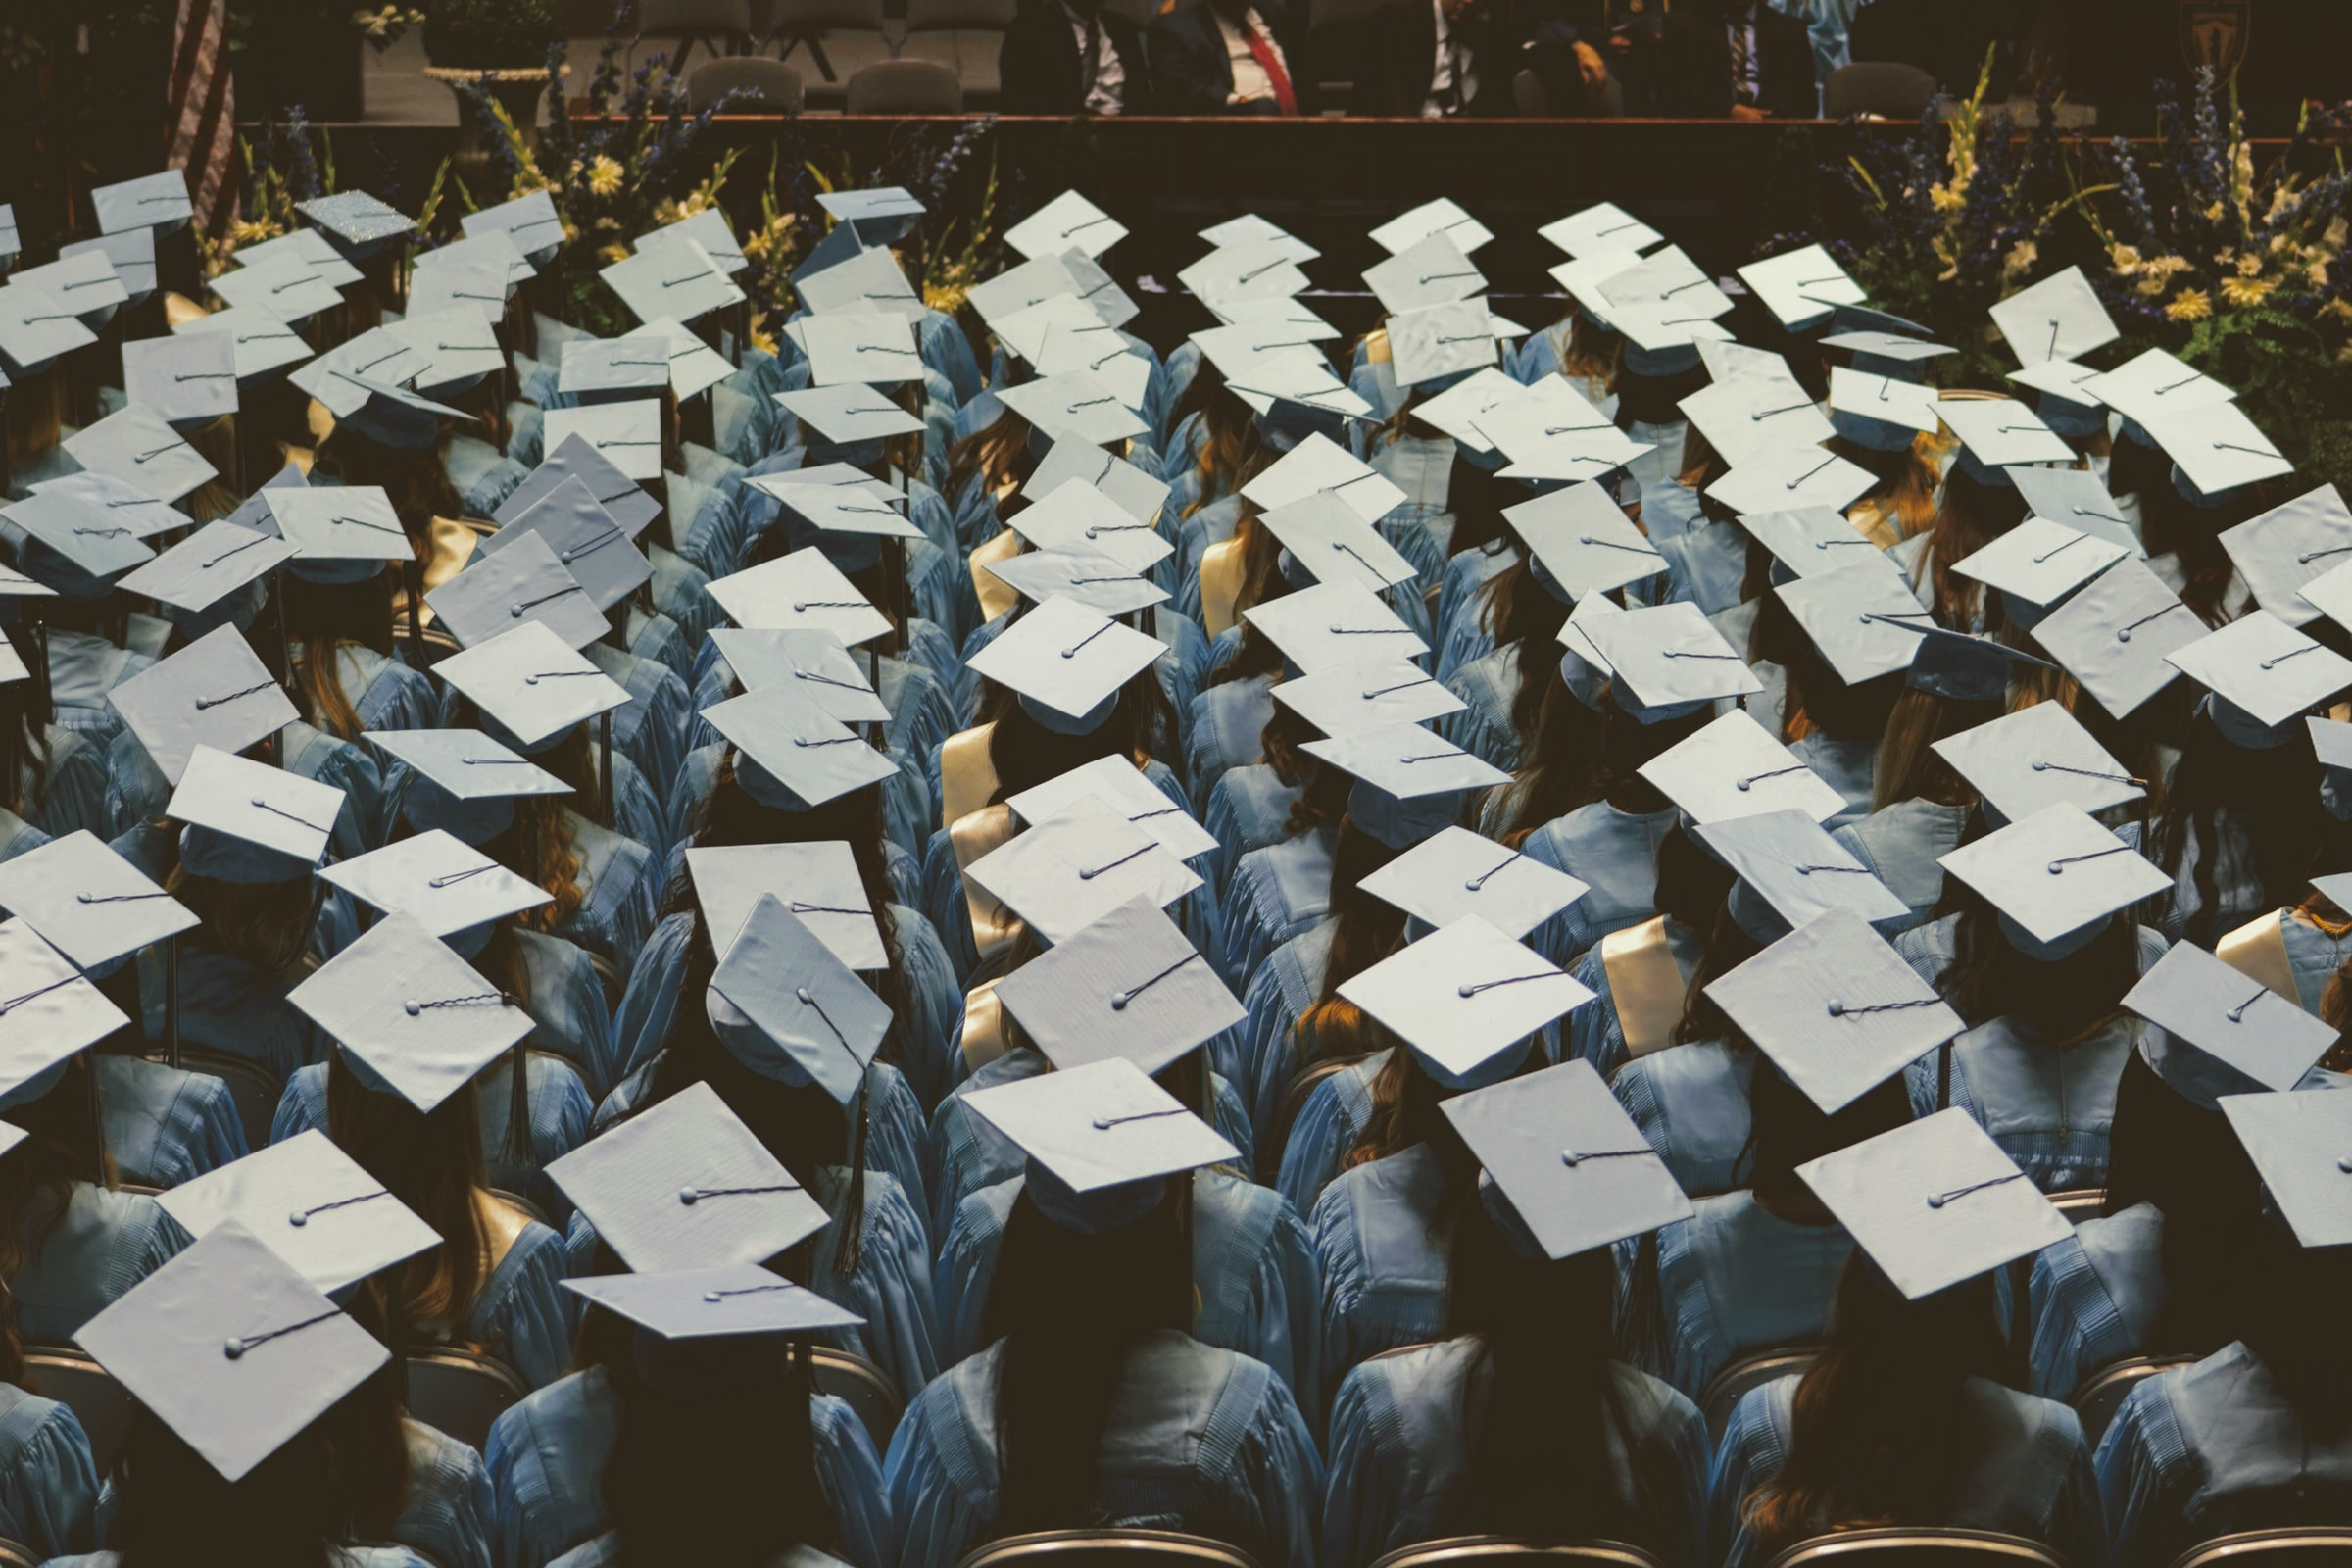 Graduating class in caps and gowns